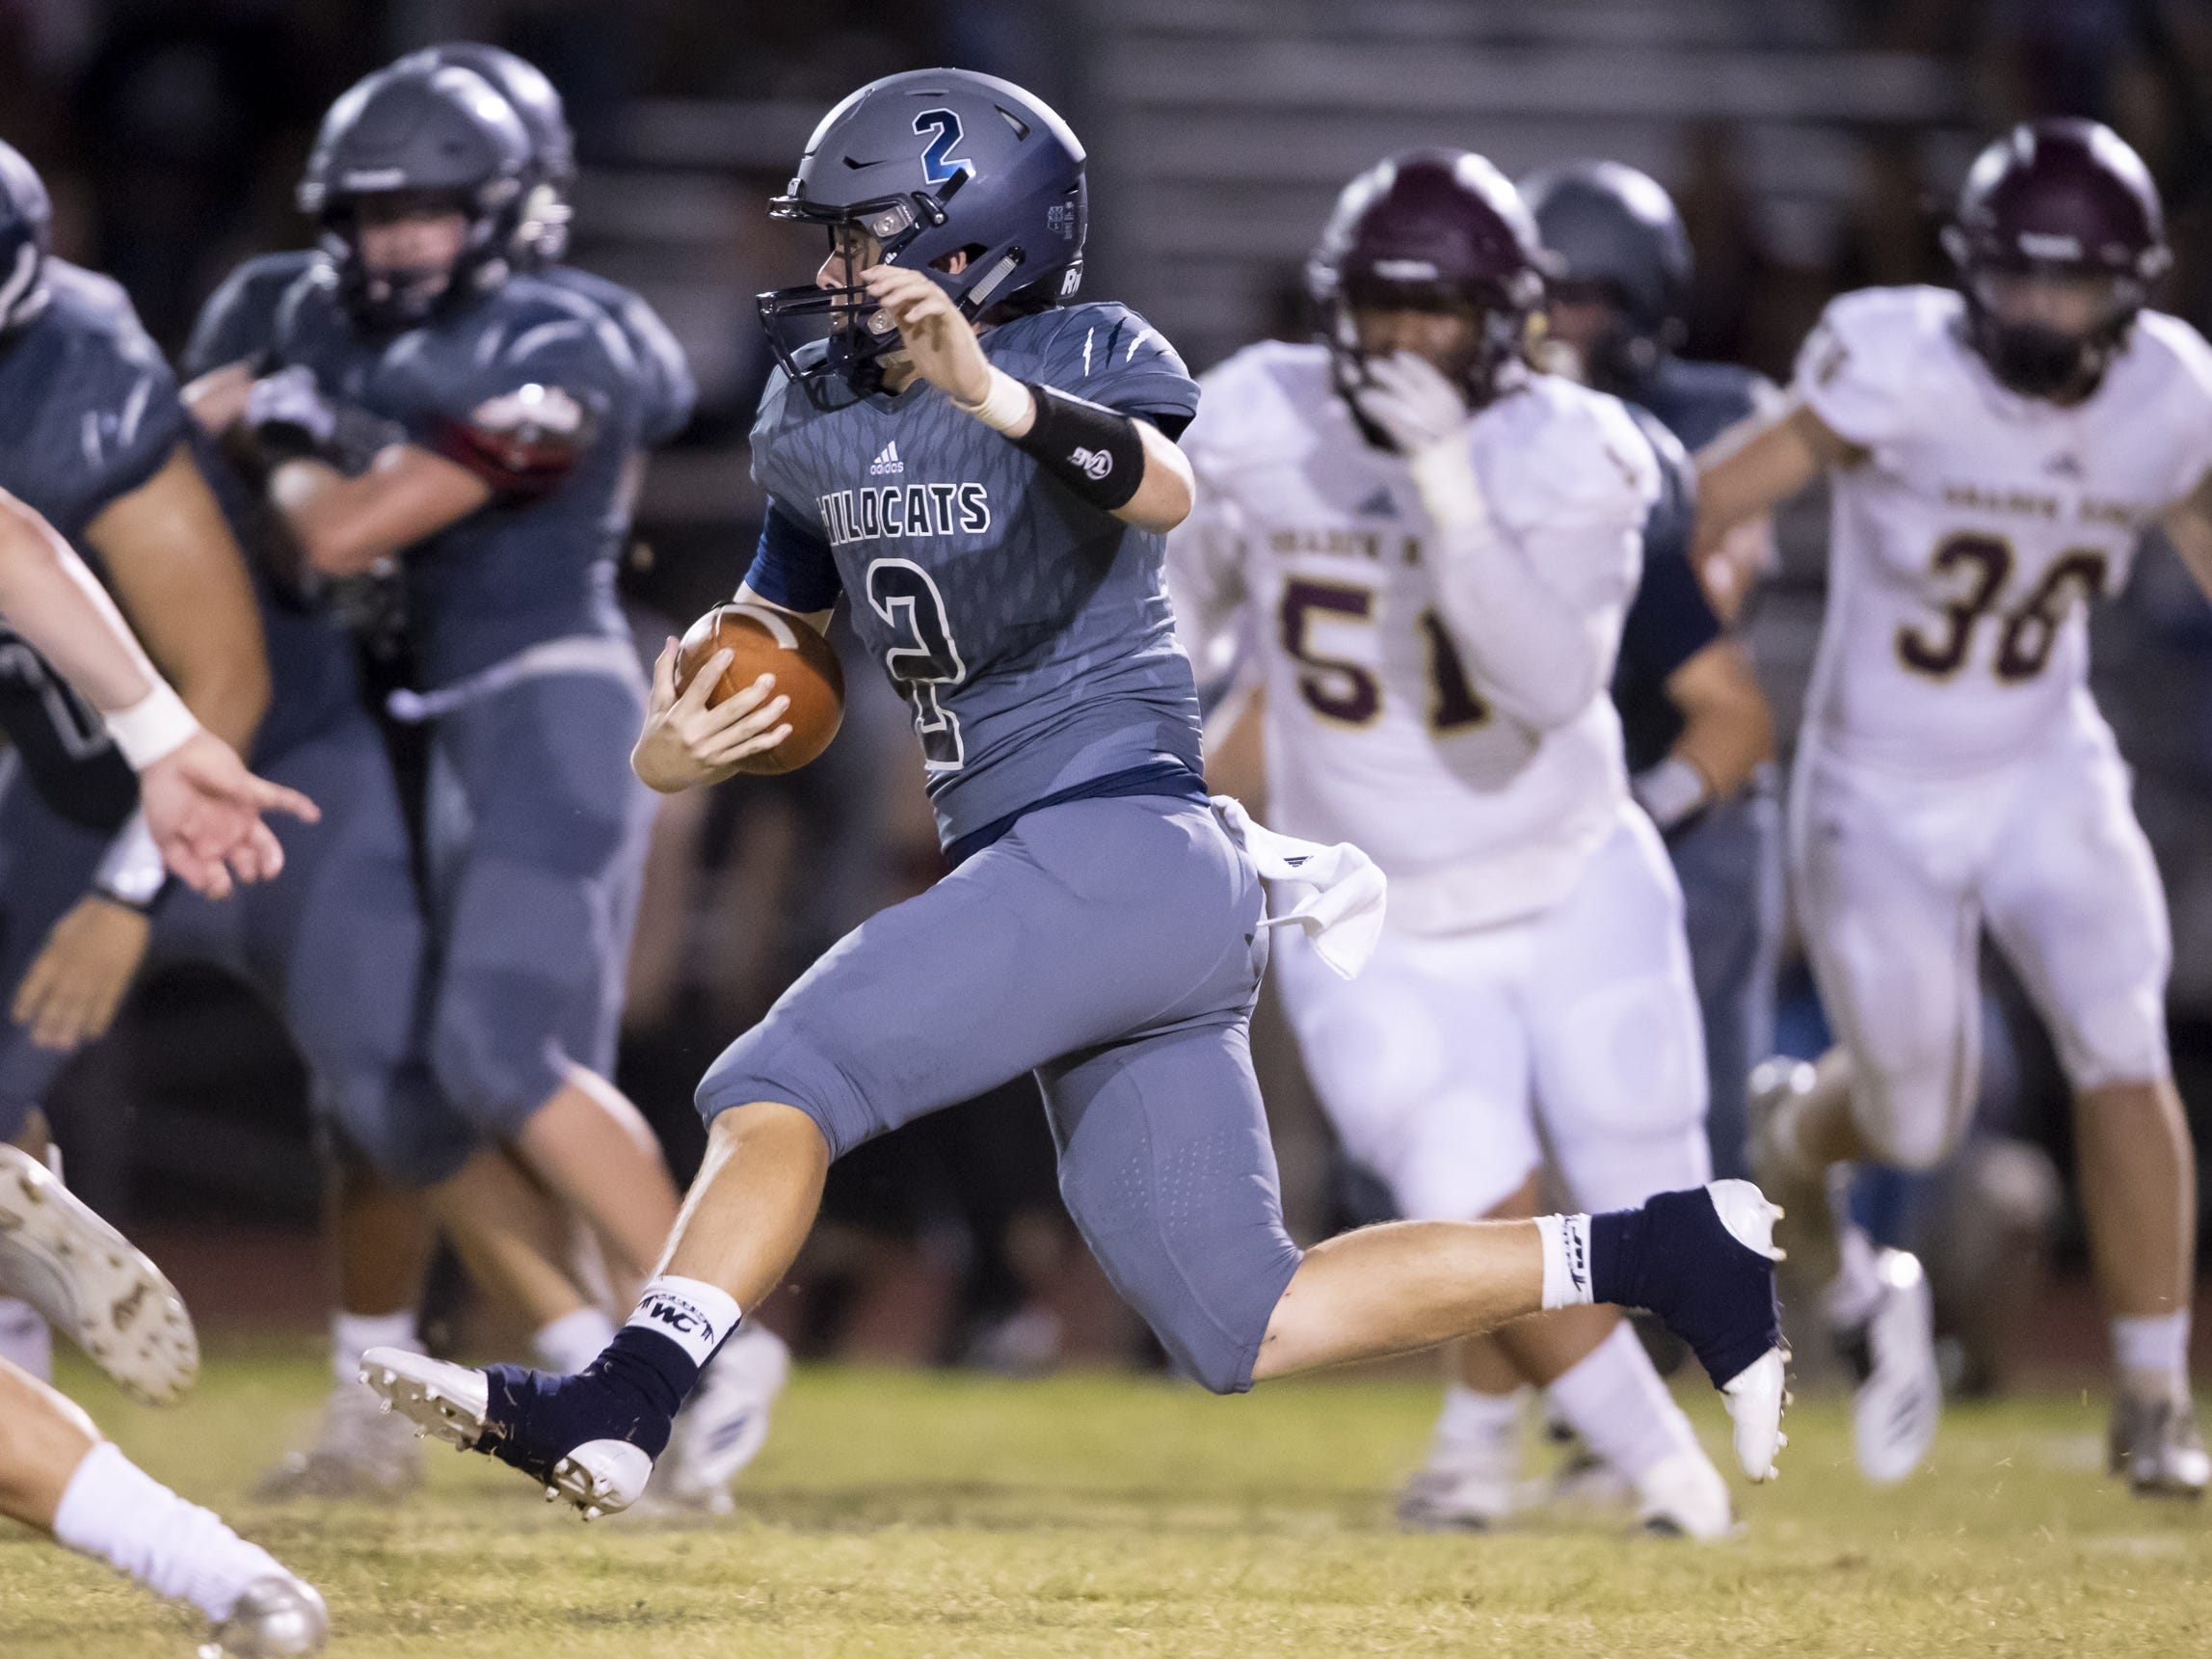 Senior quarterback Brendan Haynes (2) of the Willow Canyon Wildcats runs the ball against the Shadow Ridge Stallions at Willow Canyon High School on Friday, September 7, 2018 in Surprise, Arizona. #azhsfb